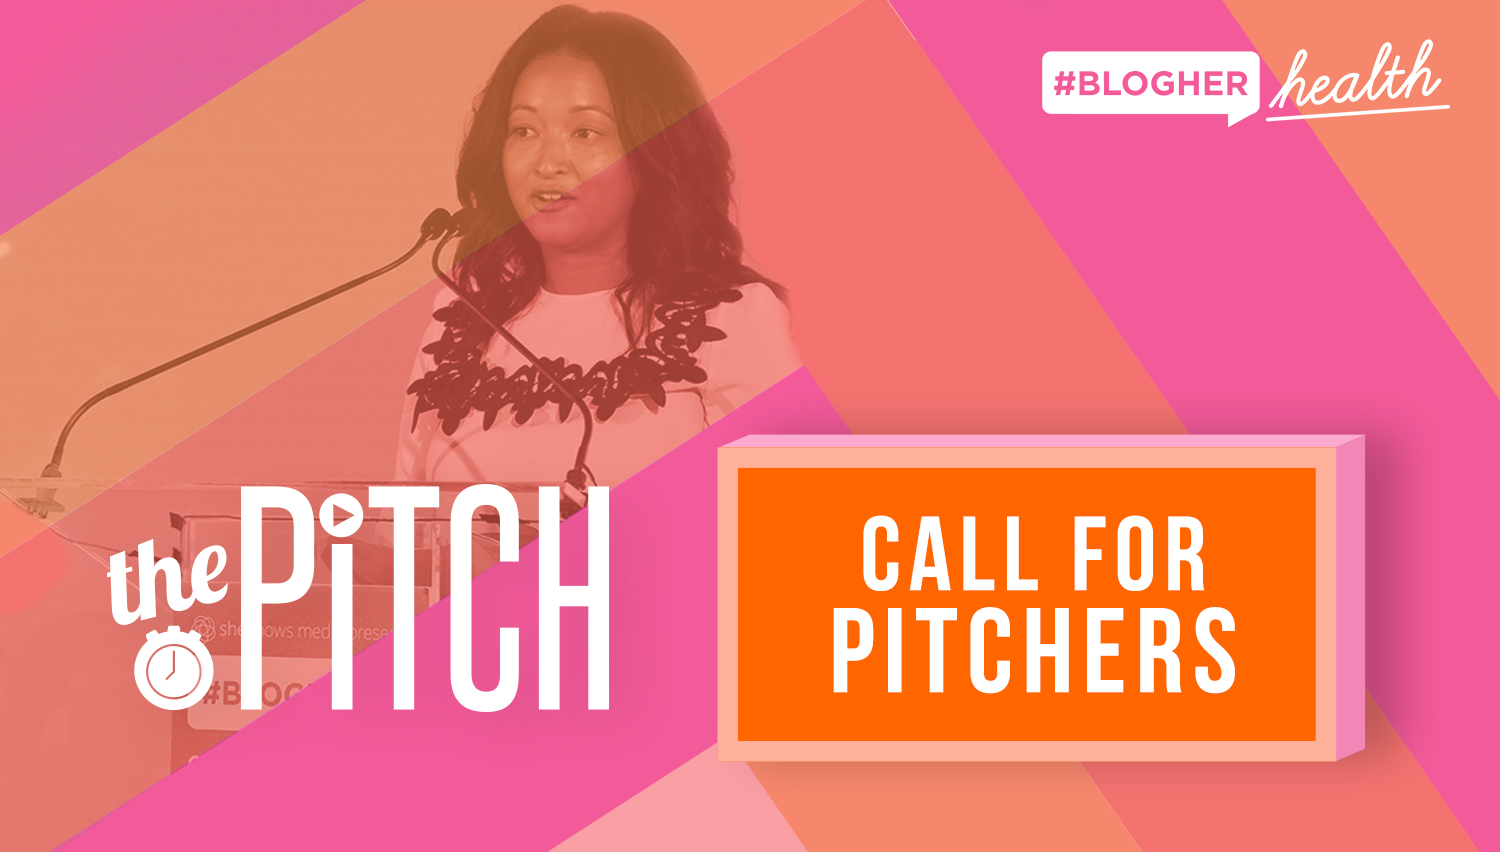 Announcing the Pitch Entrepreneur Competition - Courtney Nichols Gould of SmartyPants Vitamins, Dr. Renee Dua of Heal, Sadie Lincoln of Barre3 and Sarah Lee of Glow Recipe join the judges panel for The Pitch at BlogHer Health 2019.